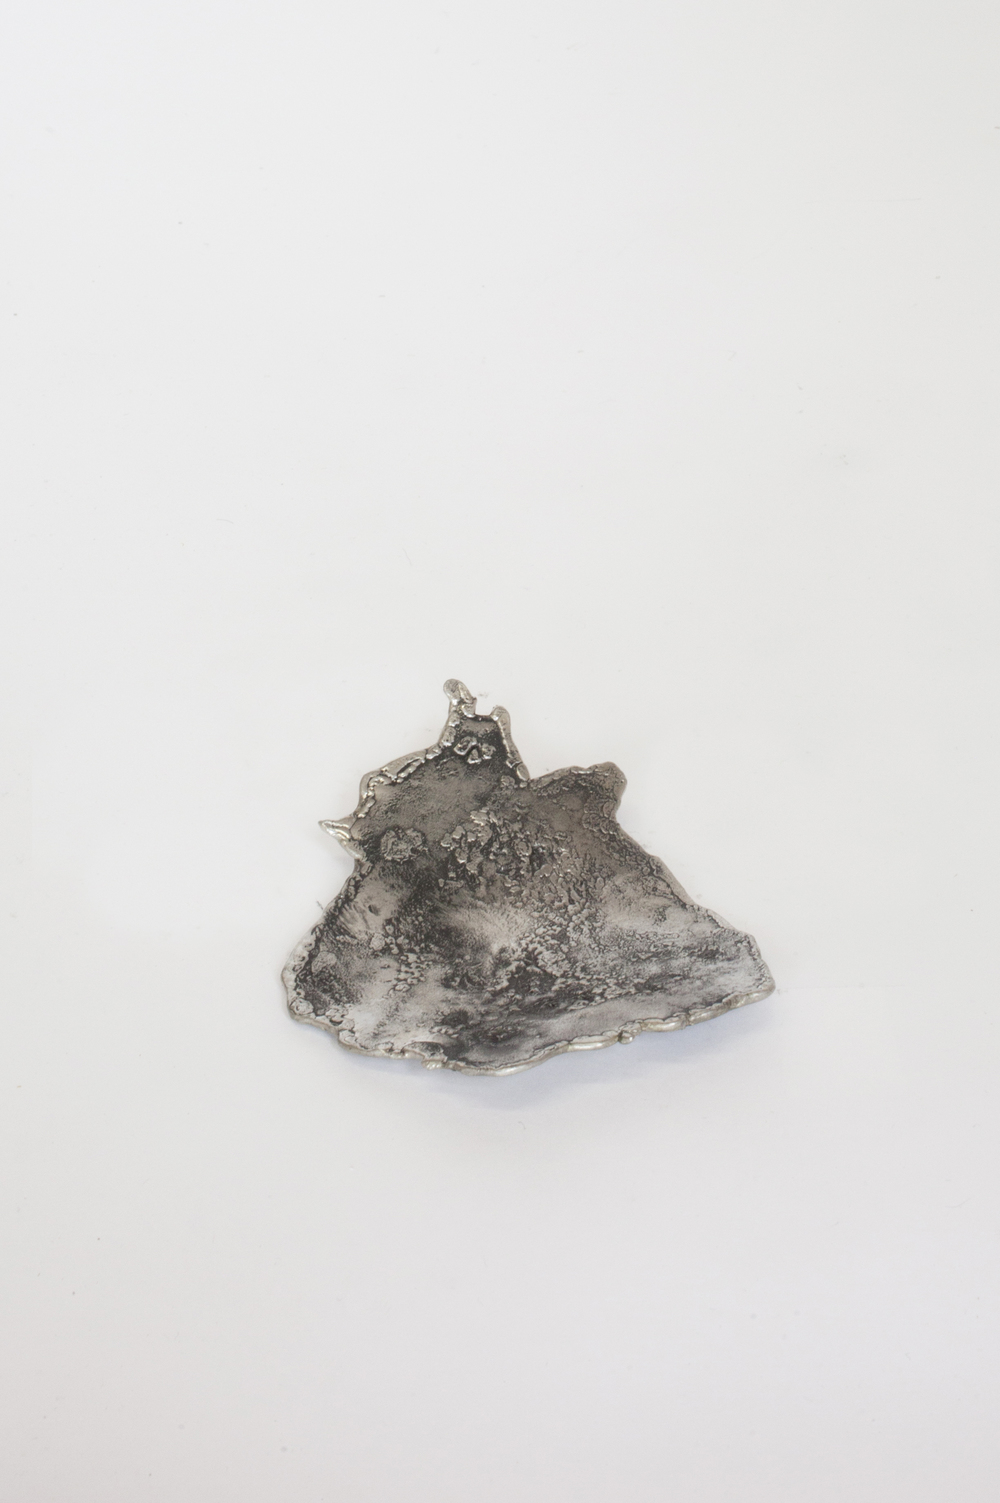 """PEWTER OBJECTS  1 of 1  PEWTER 5.5""""L x 4.5""""W   INQUIRE TO PURCHASE    IN STOCK"""